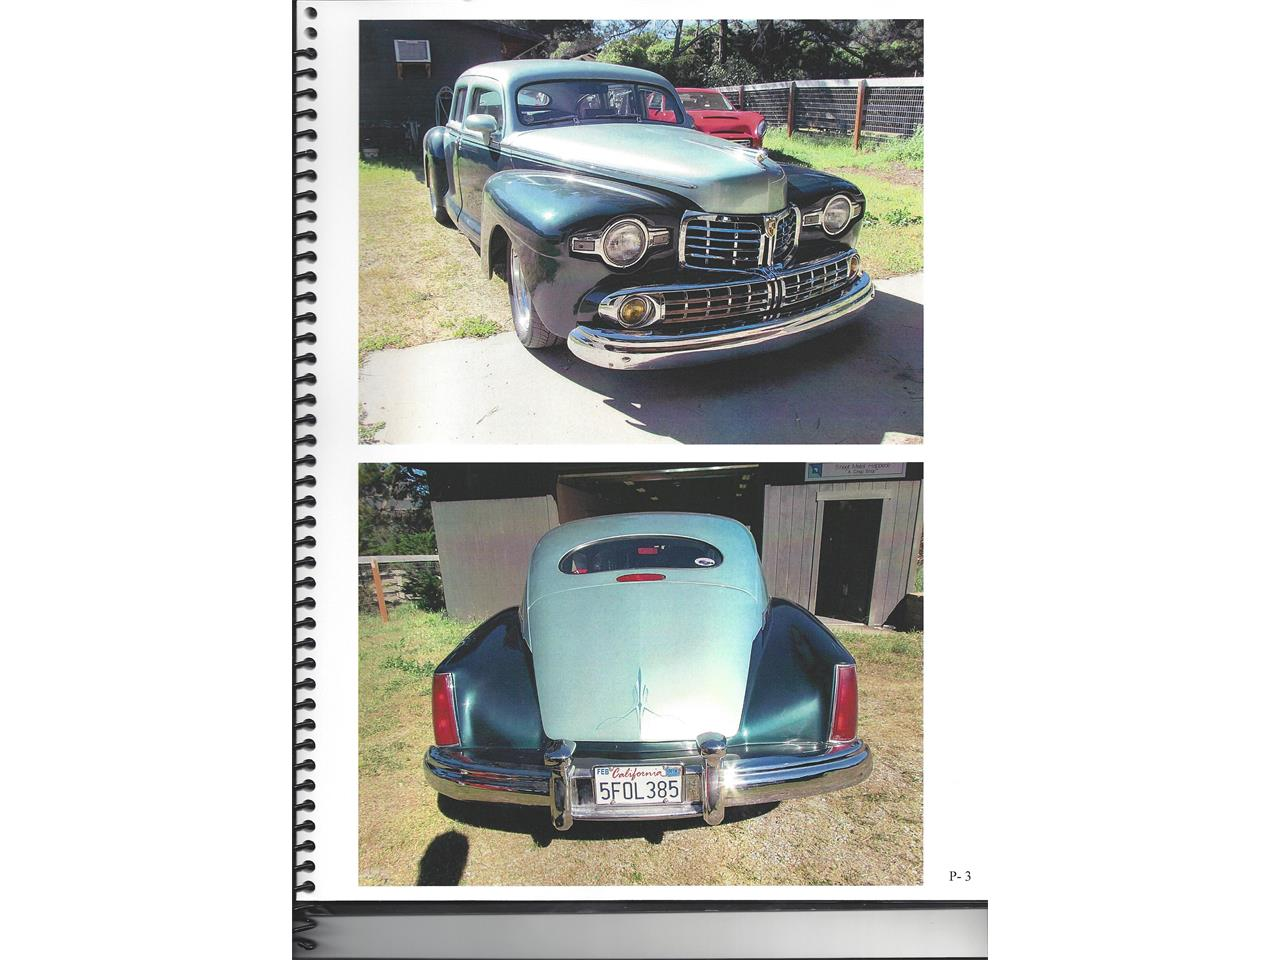 Large Picture of '47 Sedan located in Mississippi - $53,900.00 Offered by a Private Seller - MTB6